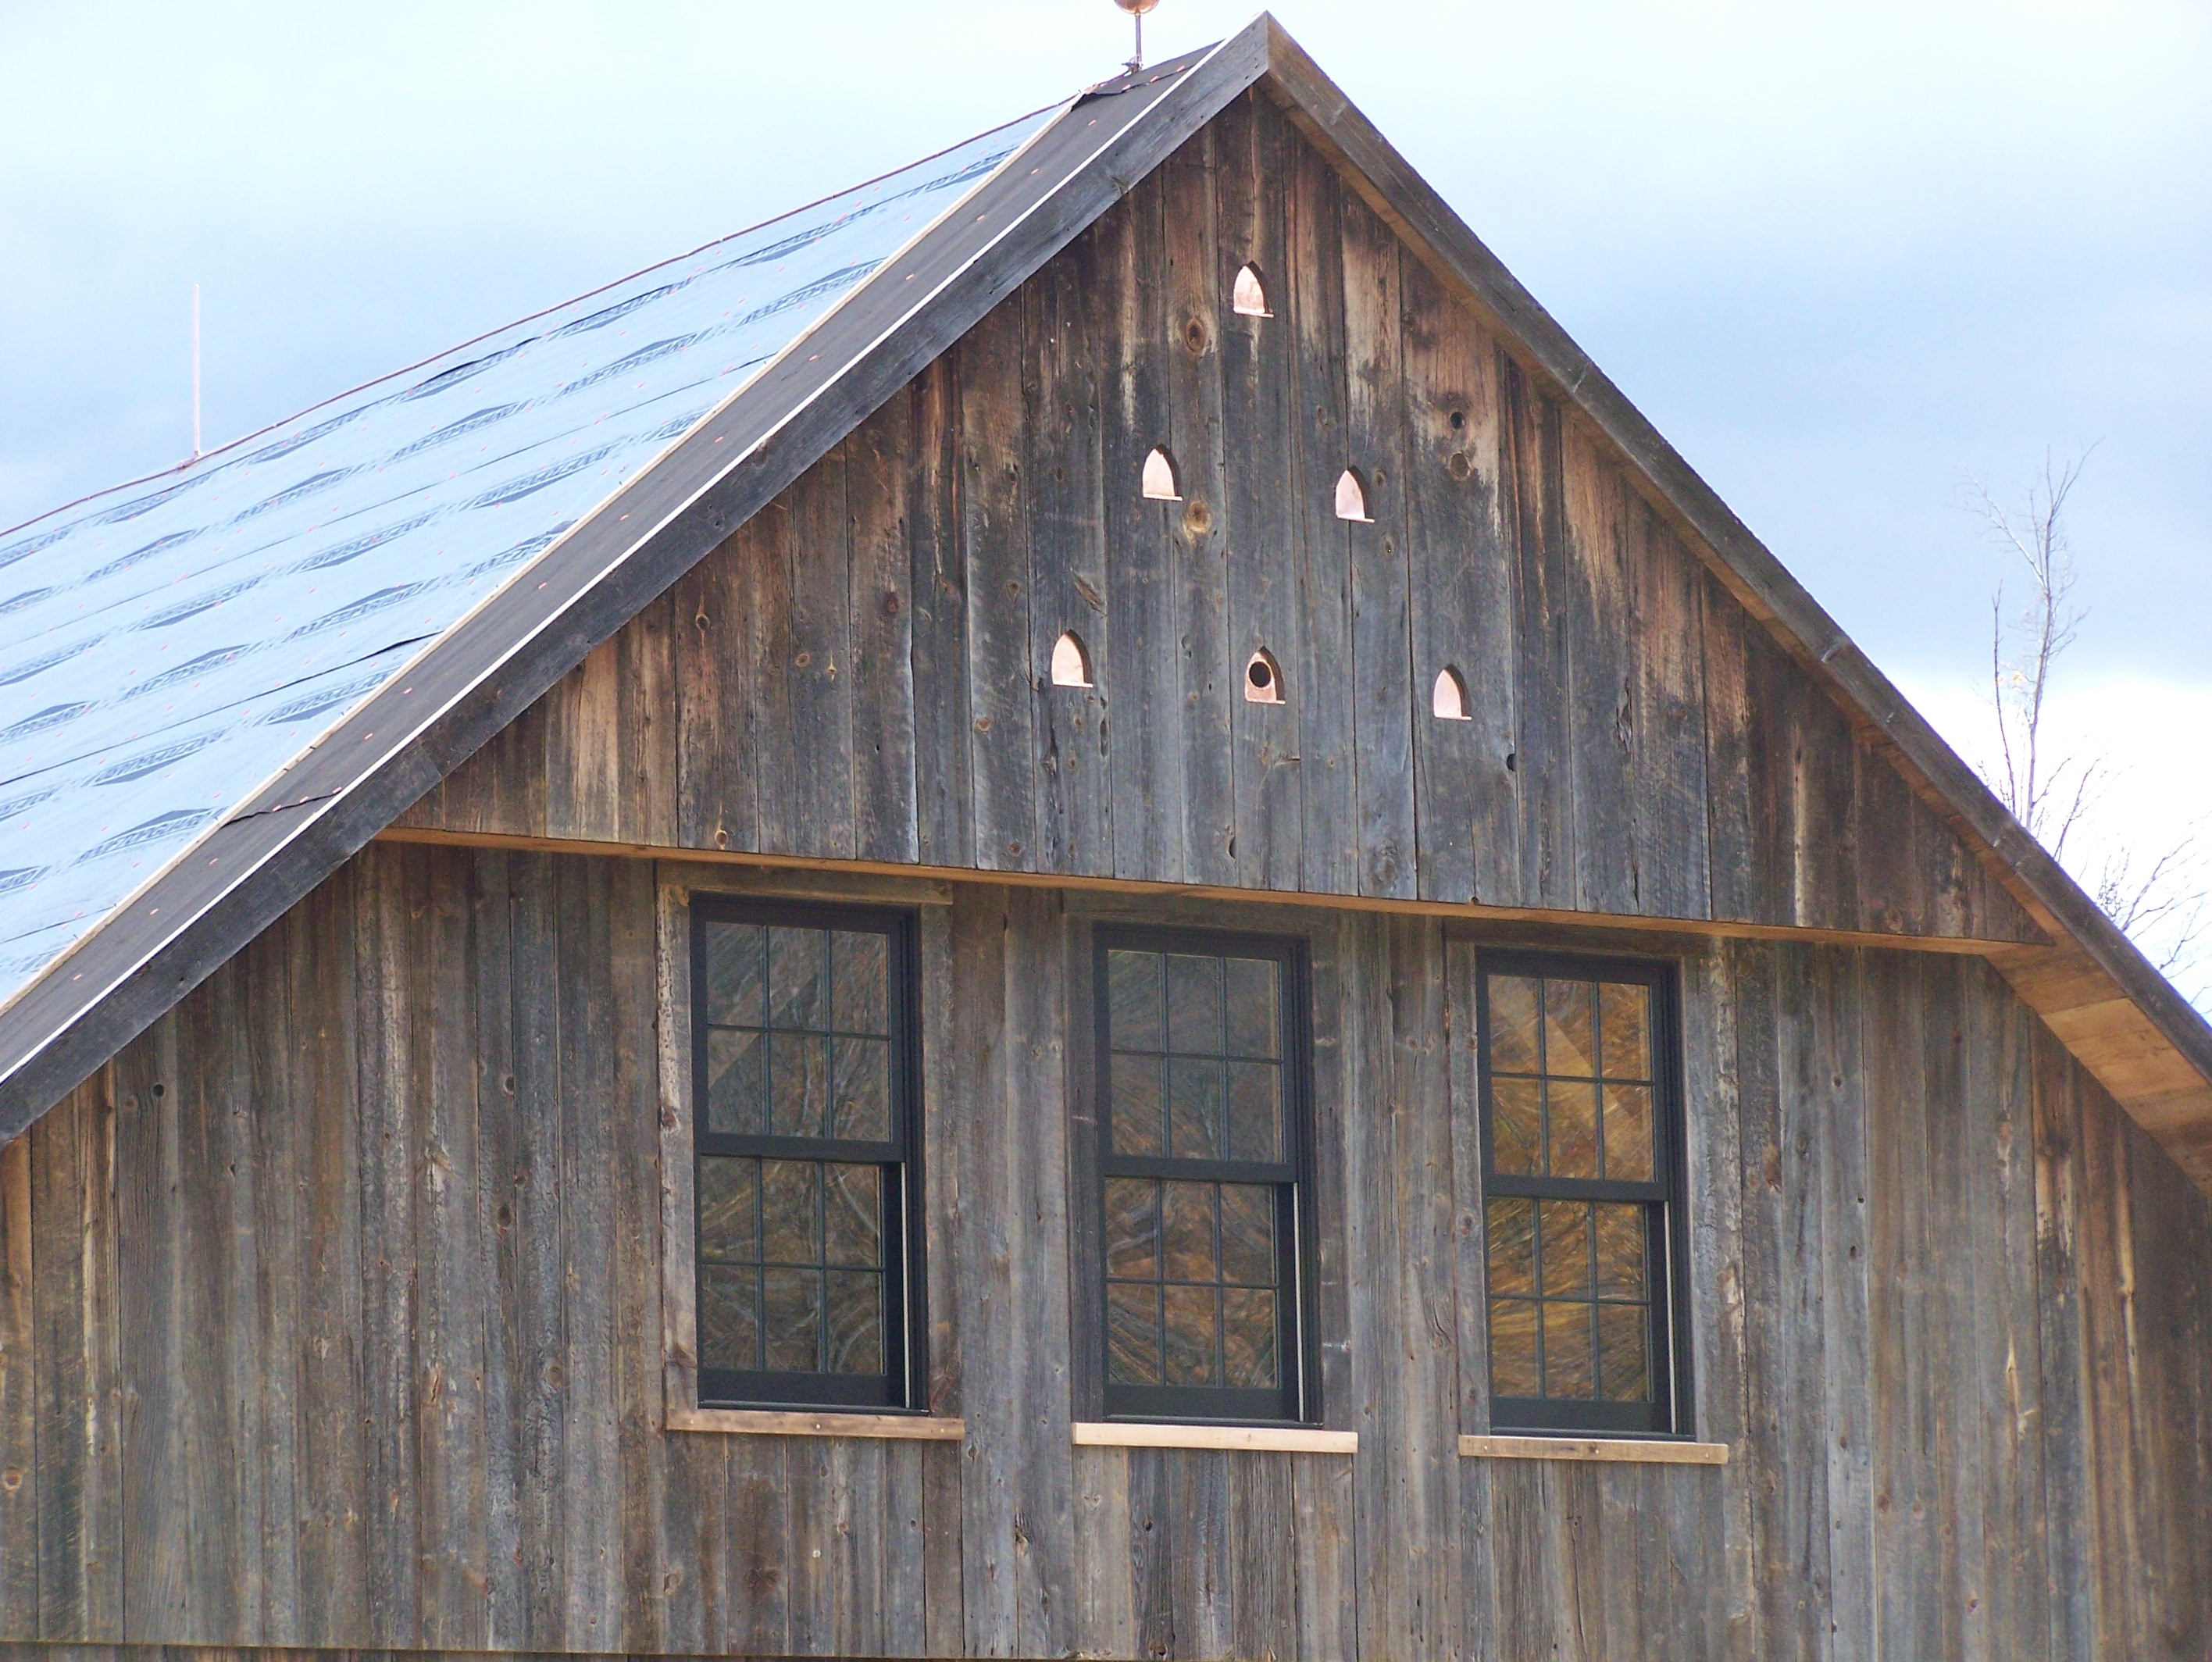 timber frame barn - photo #49